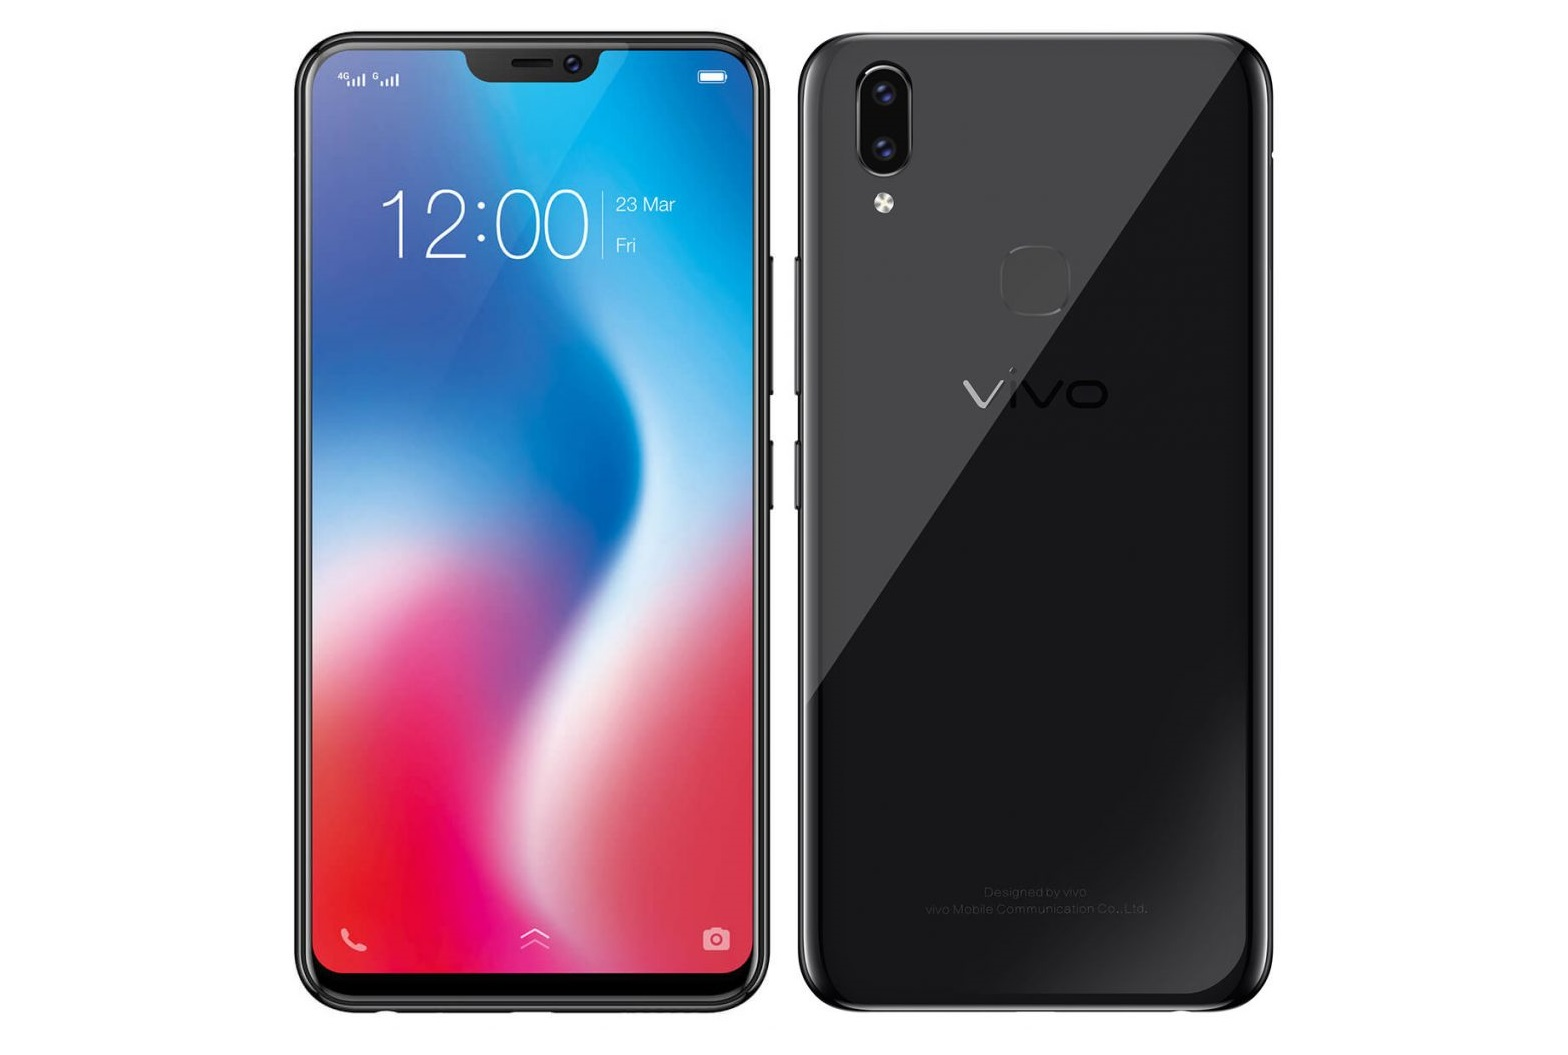 Vivo V9 Is Official With 90% Screentobody Ratio And 24